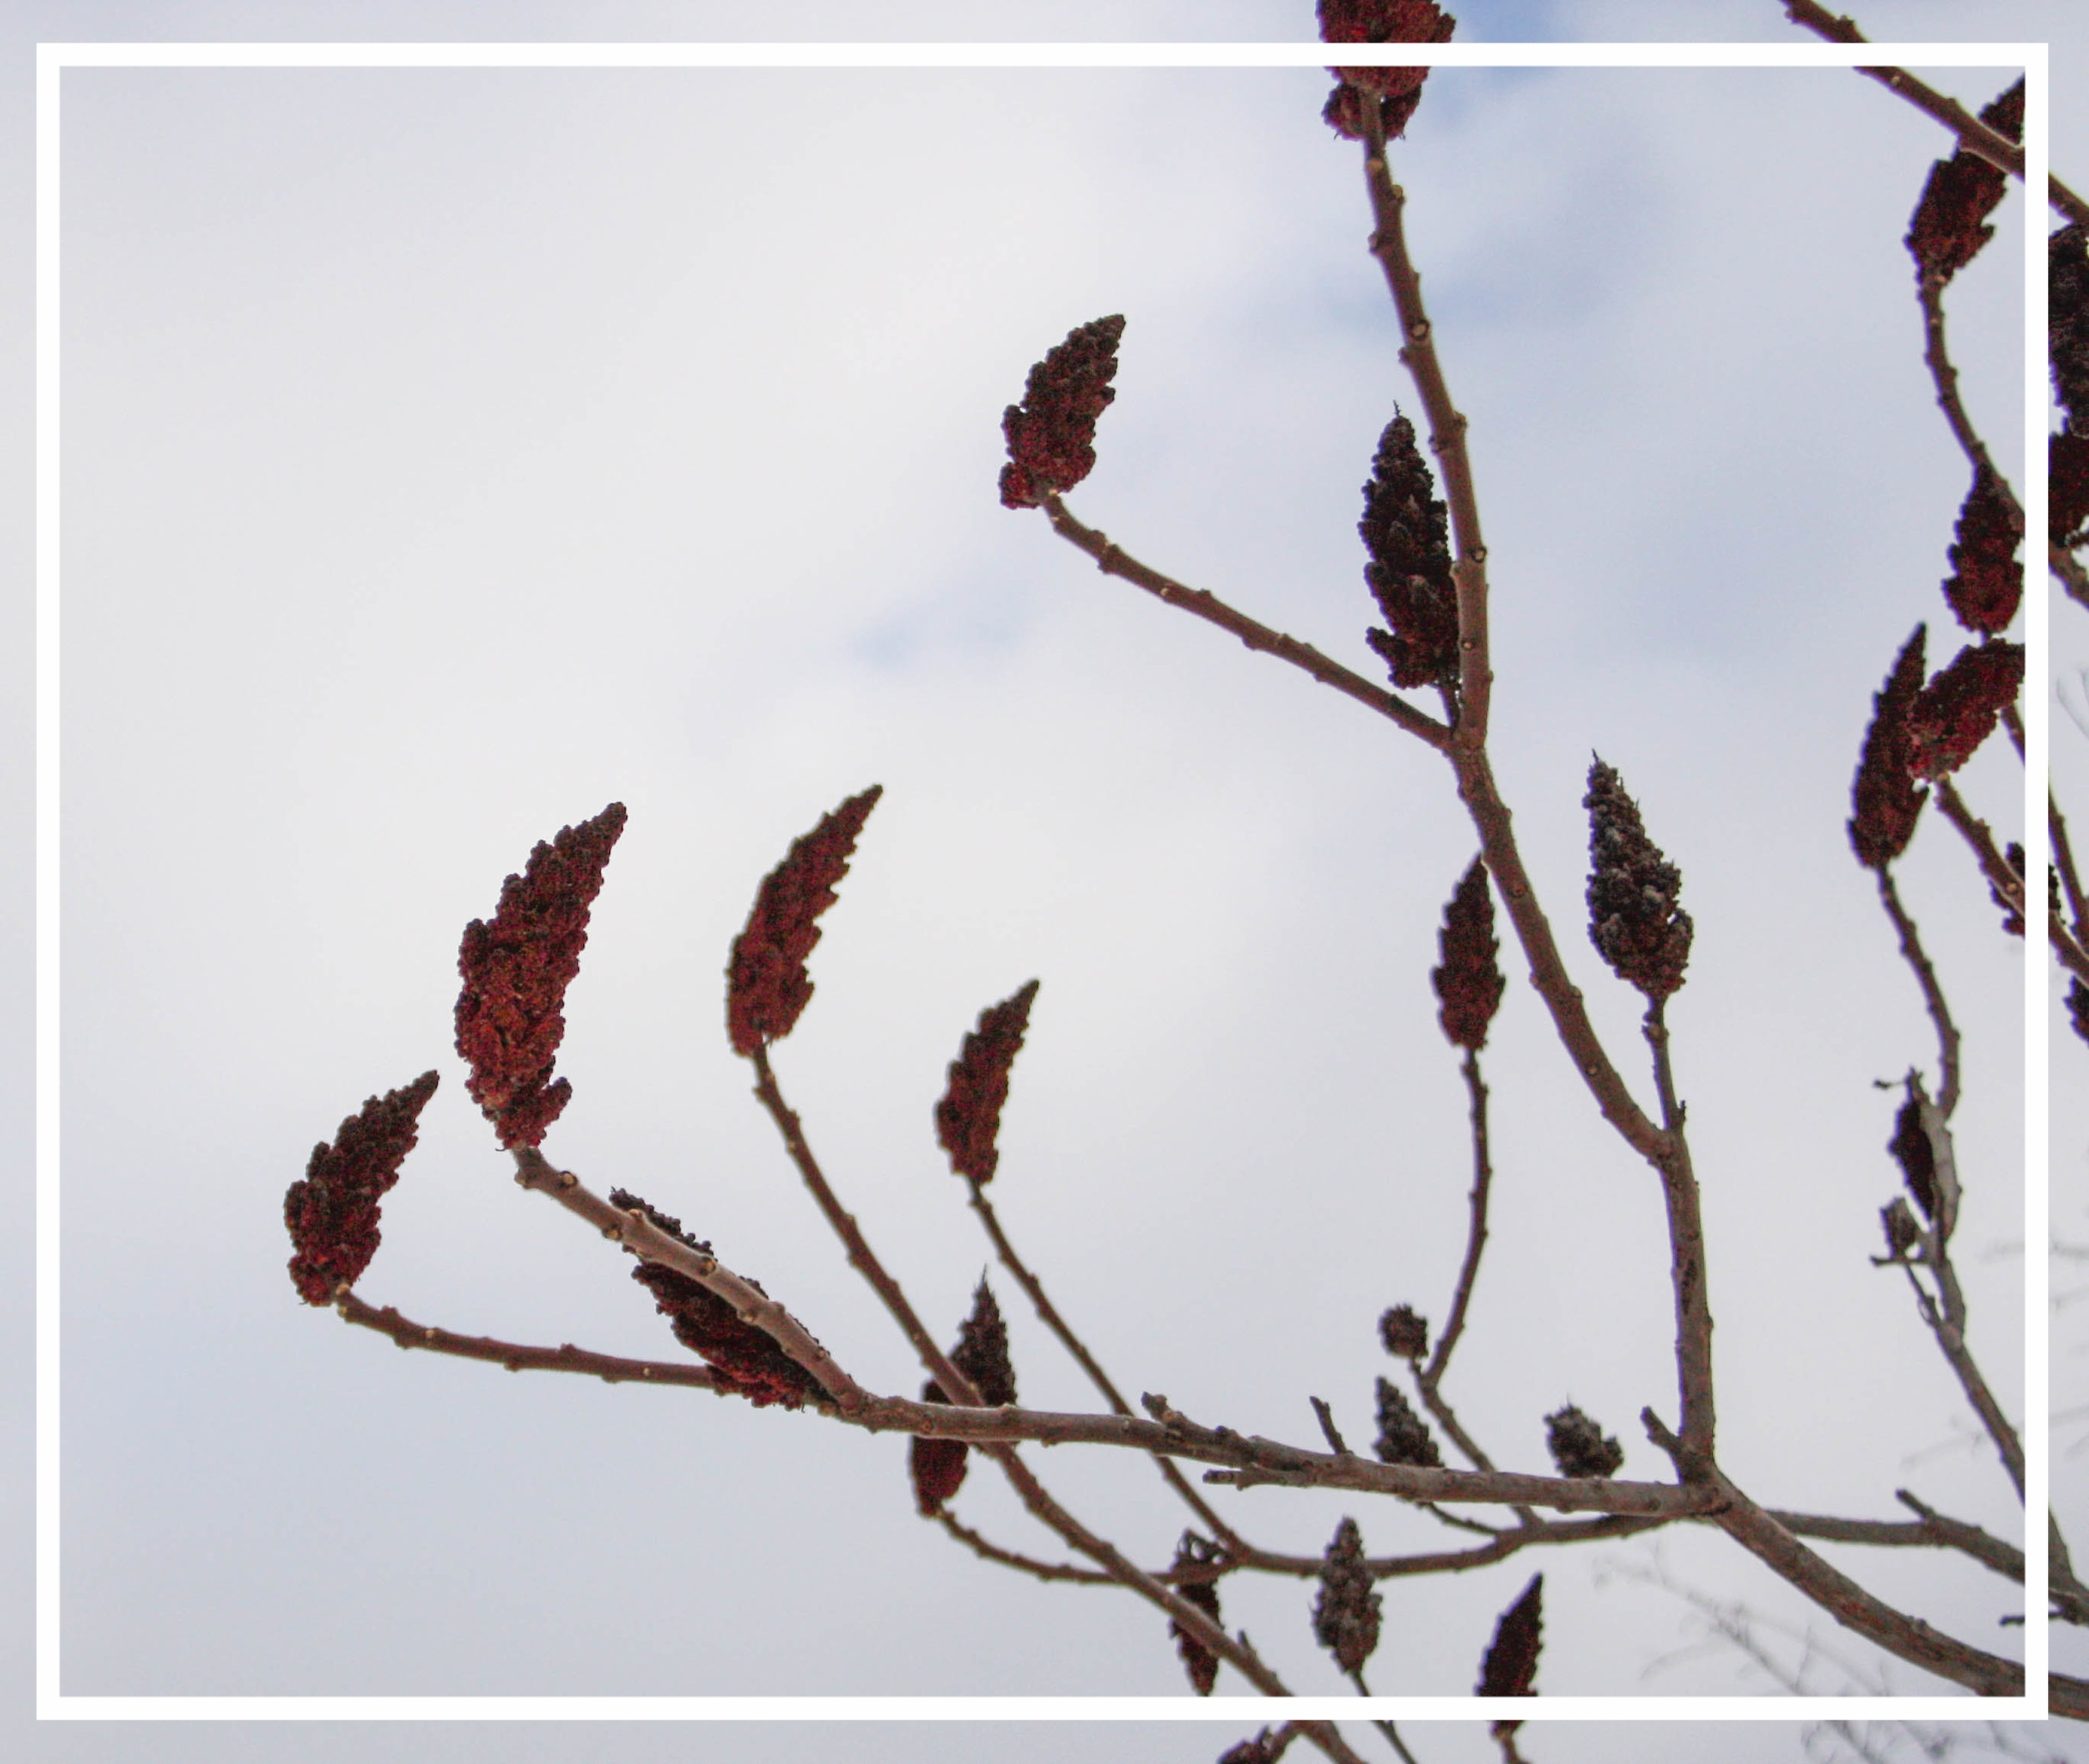 Rhus typhina 's rust-colored seedheads persist through the winter for a striking visual display.